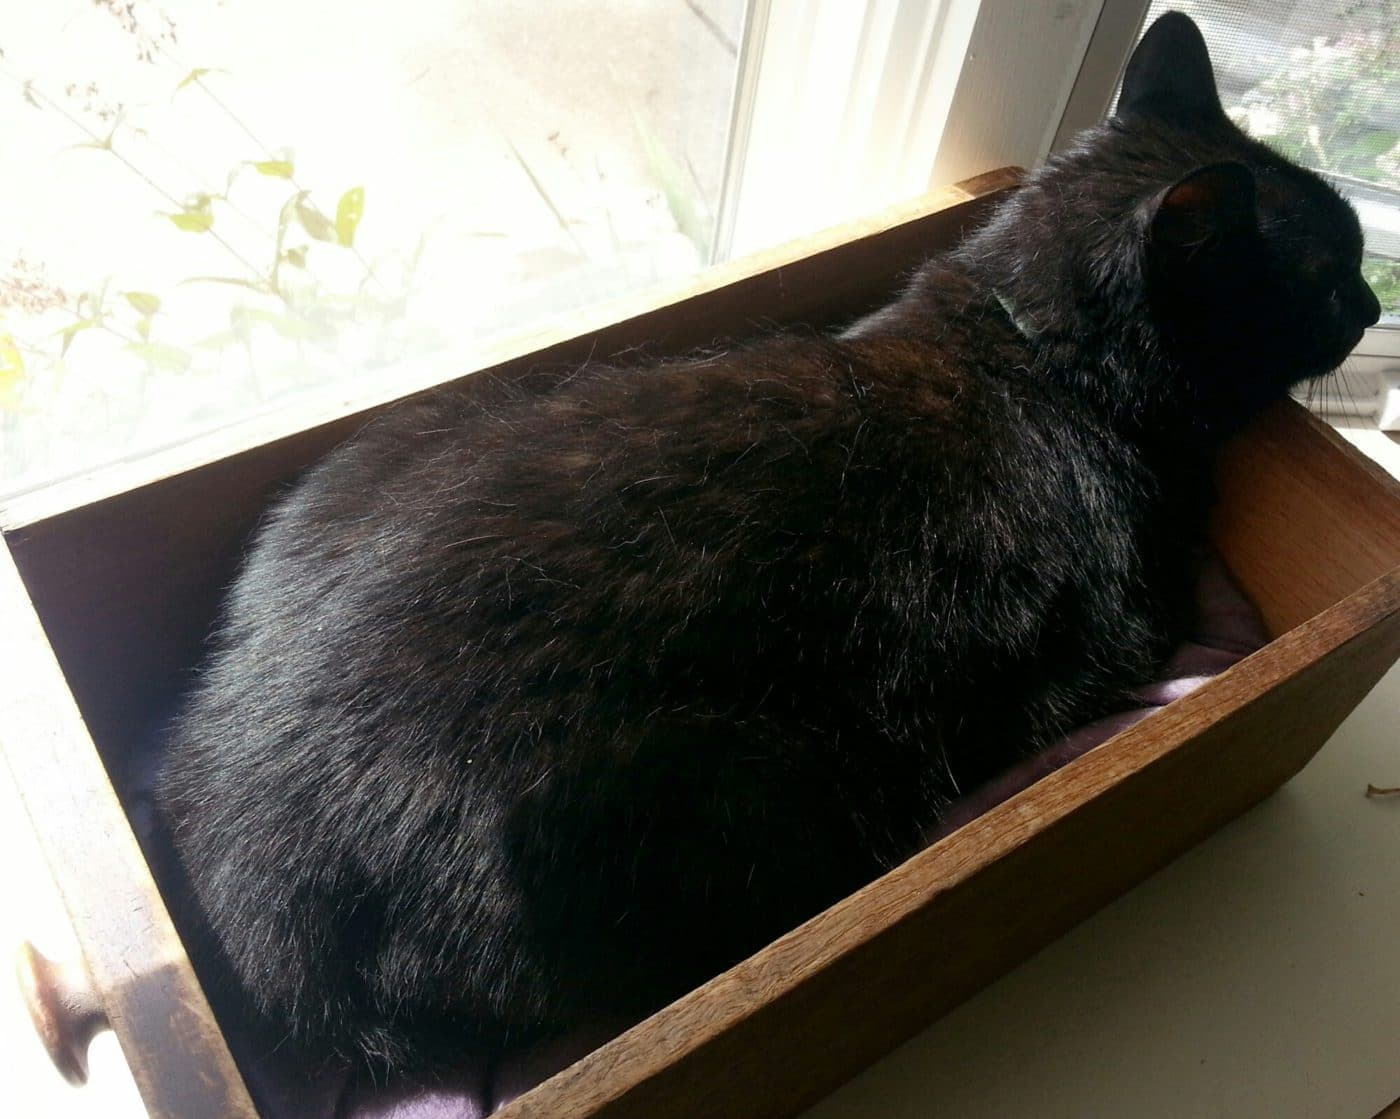 Lilo sleeping in a drawer on a windowsill